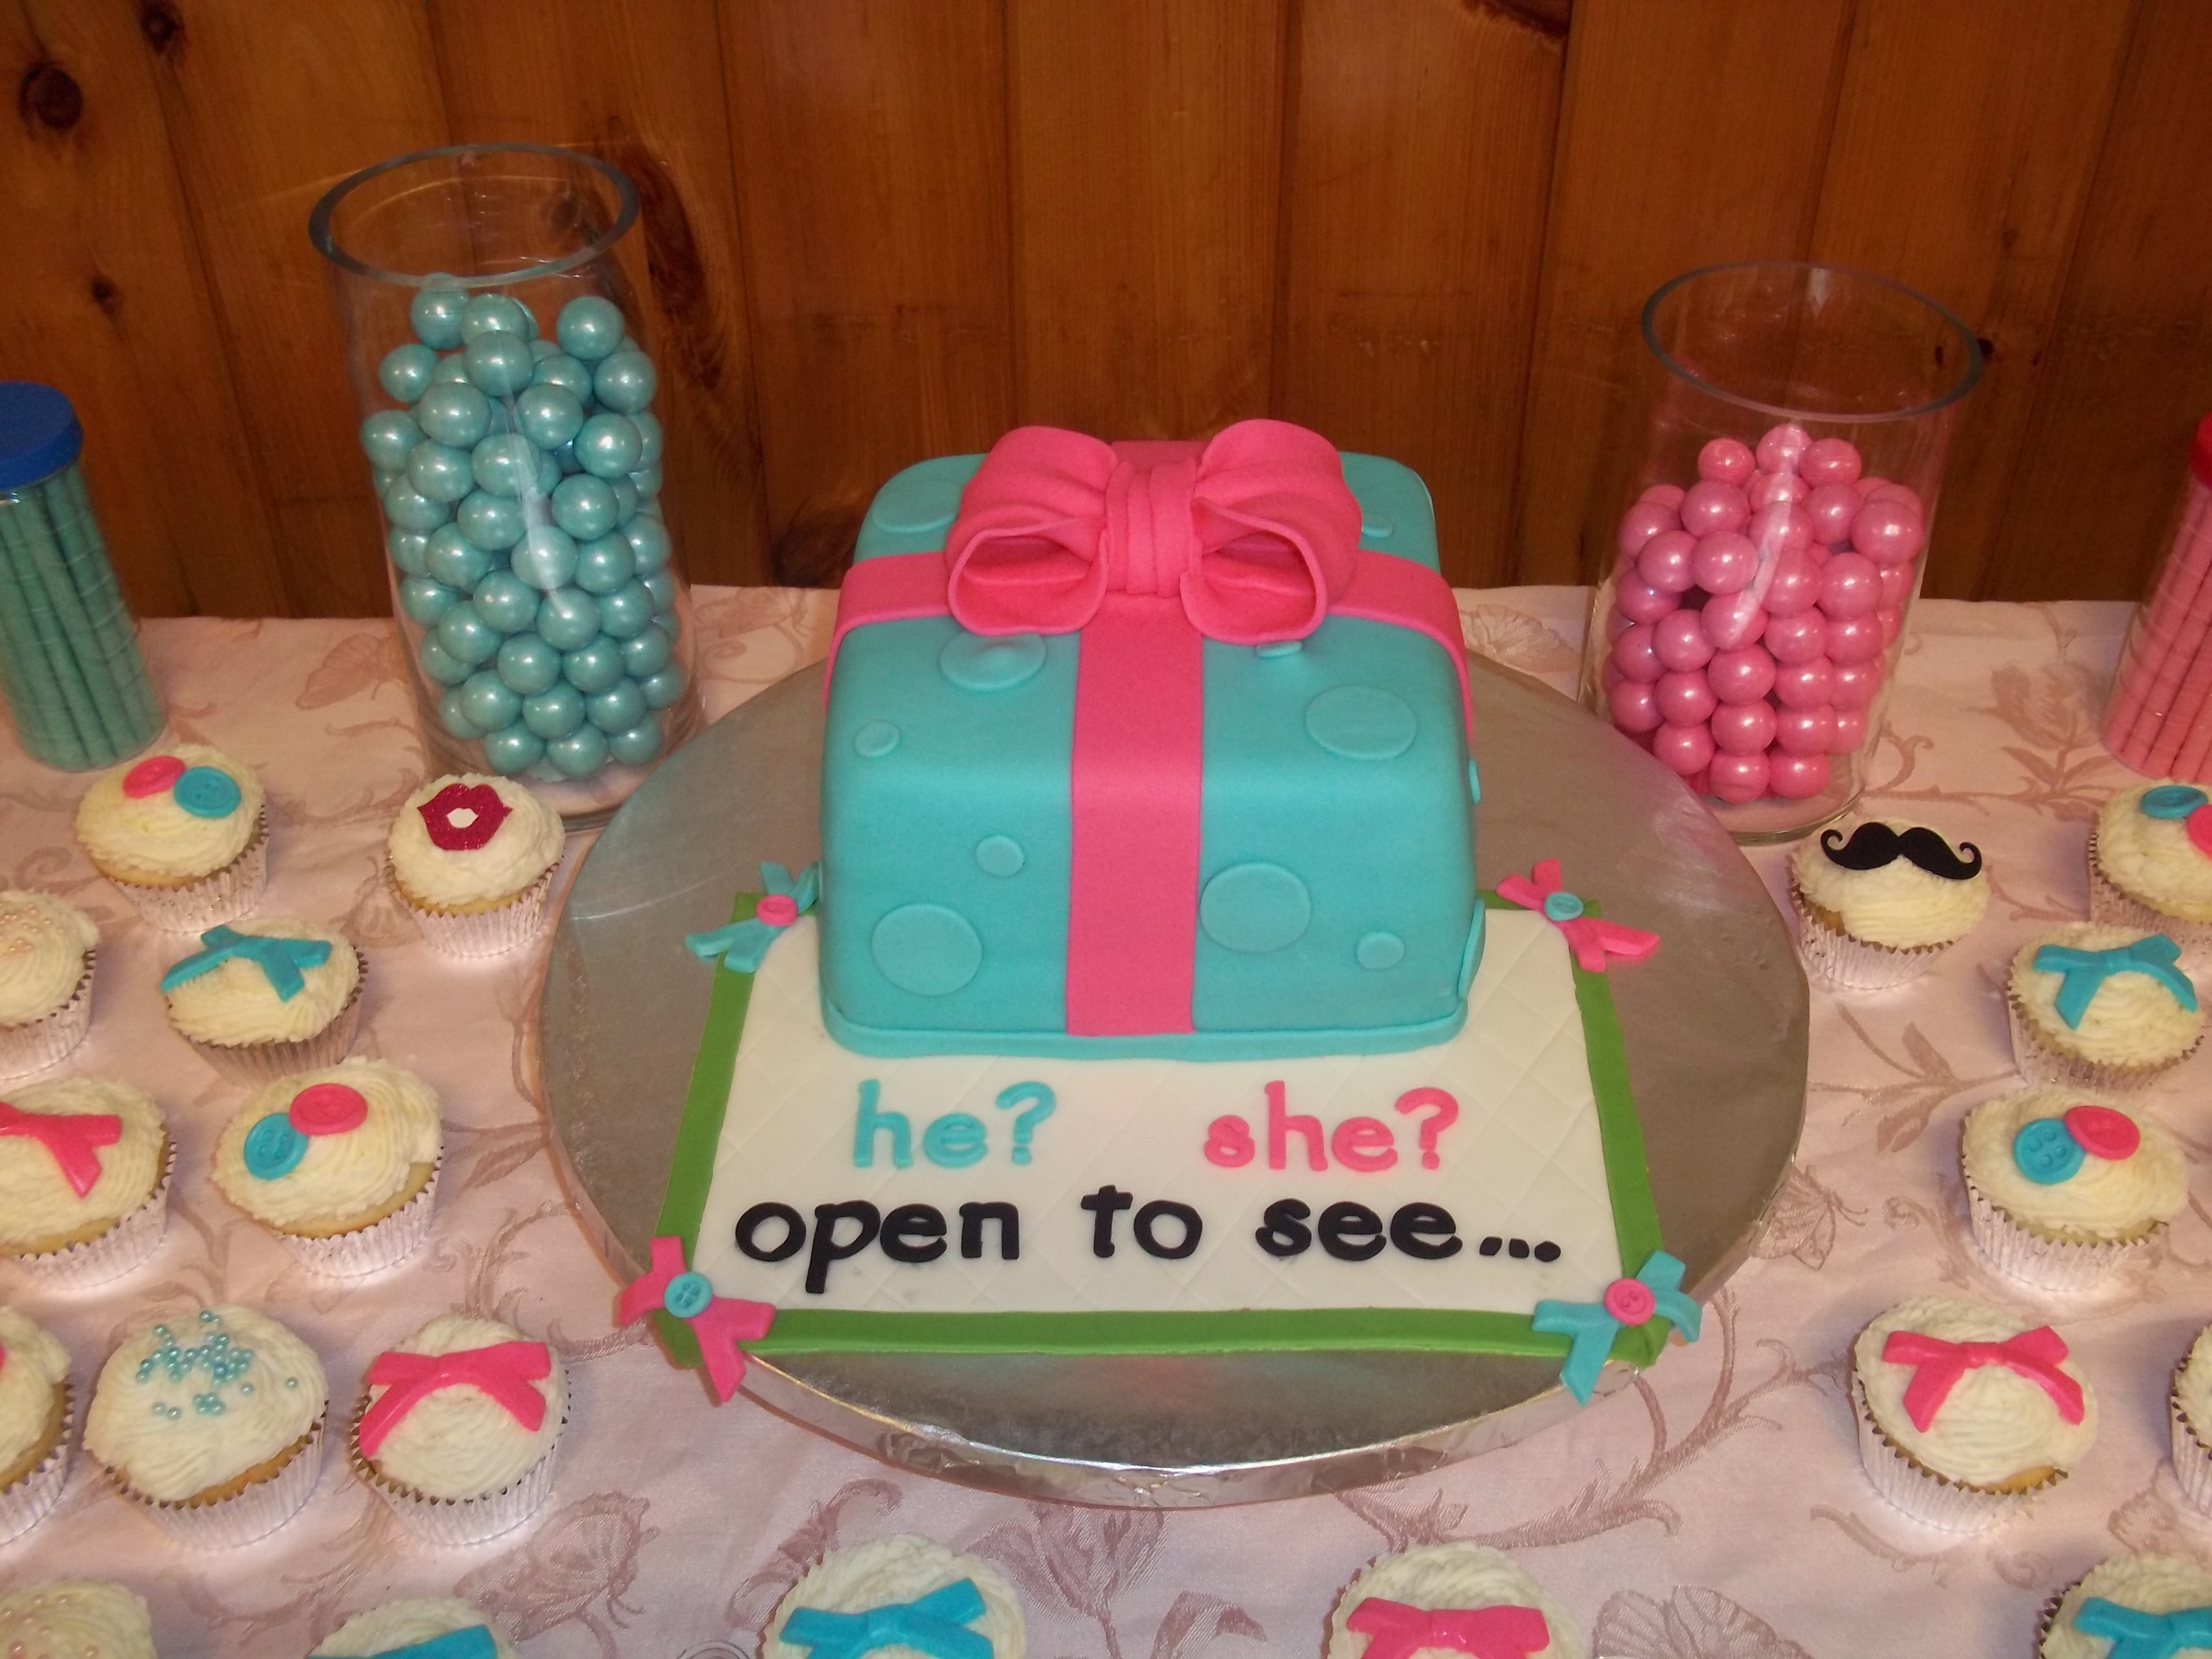 Cake Decorating Central Opening Hours : Parents Love Super Mario Having A Baby Girl I Went With Princess Peachs Crown Sitting On A ...